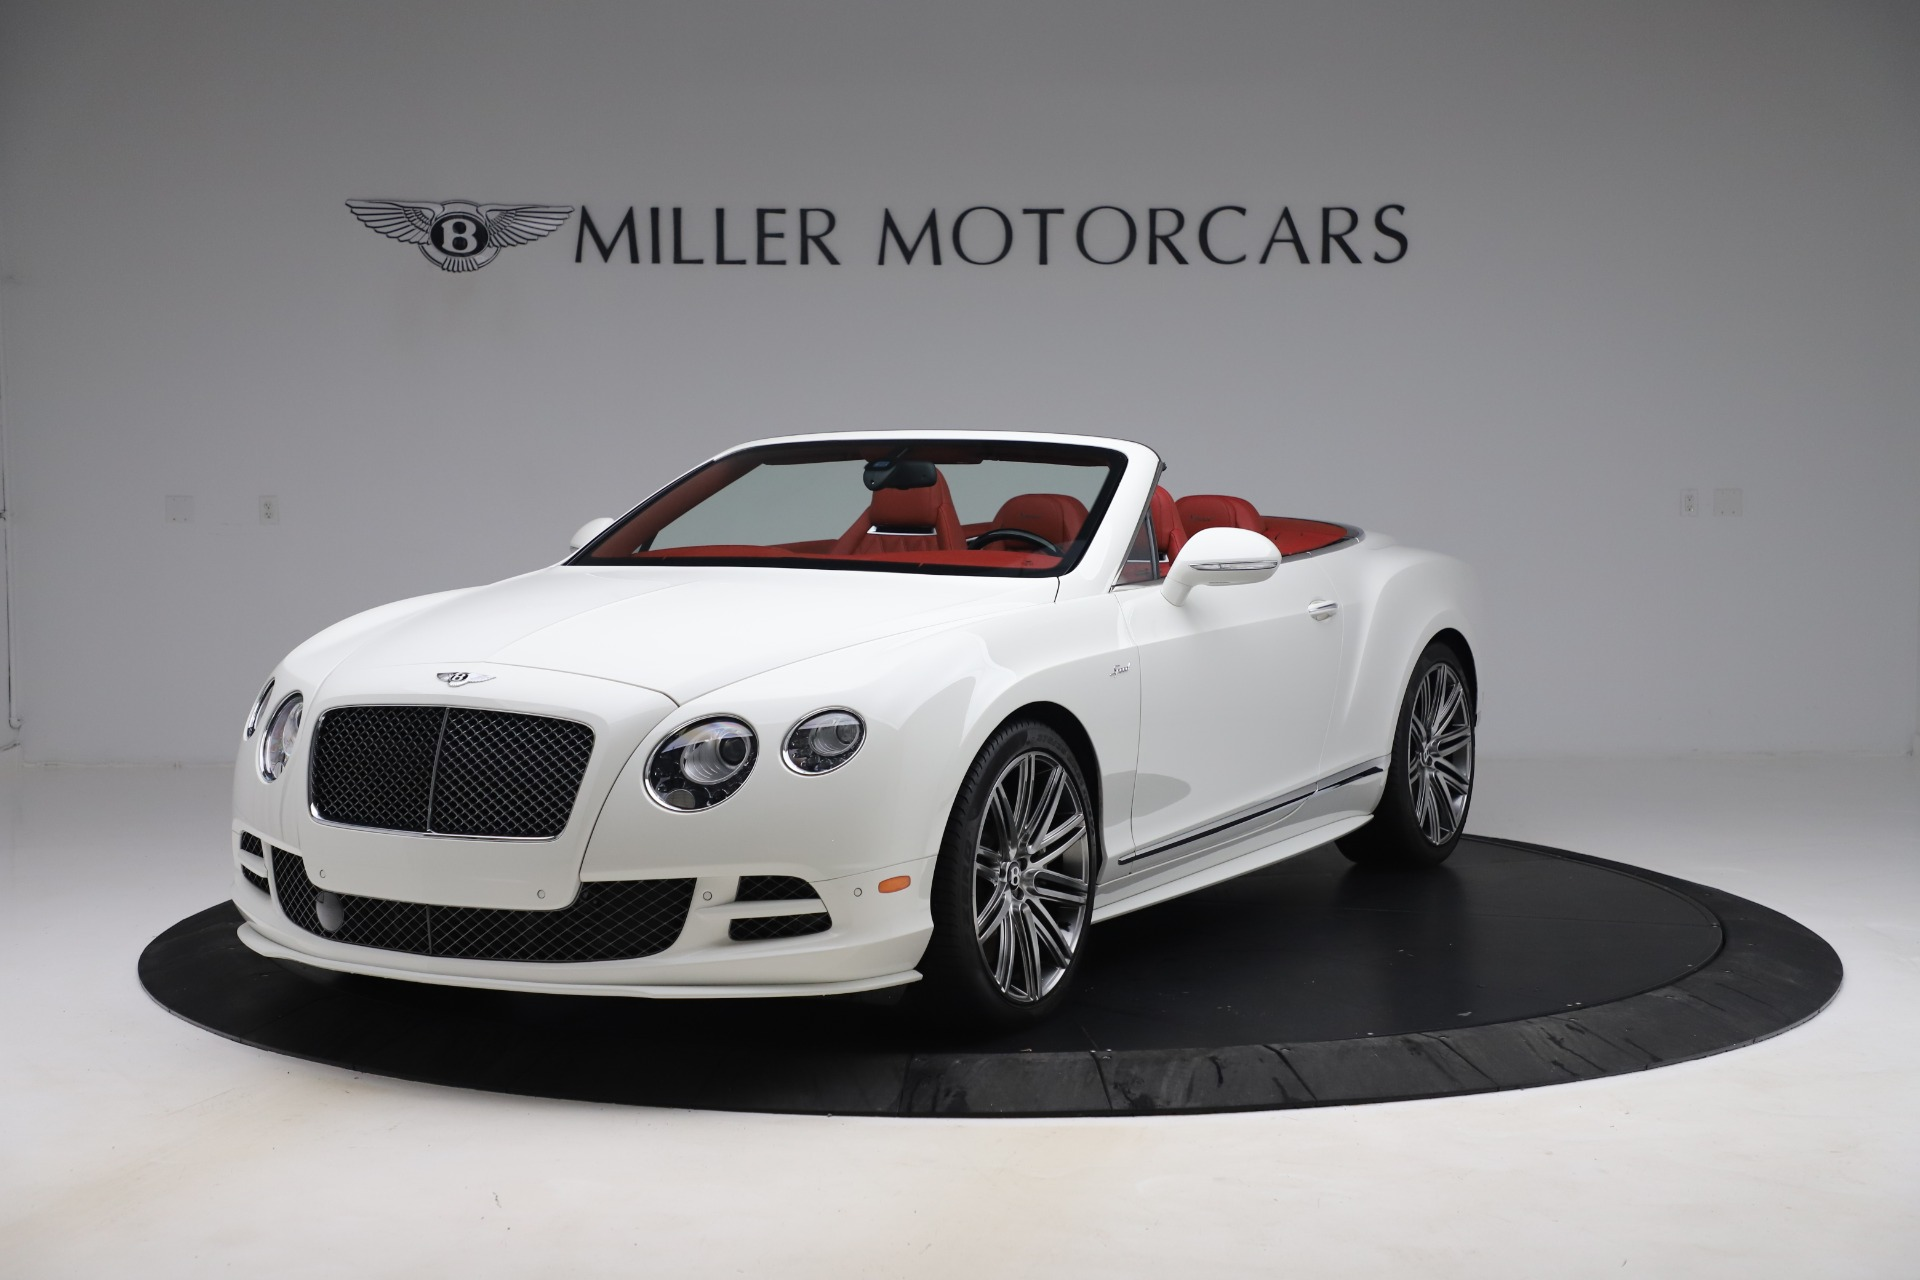 Used 2015 Bentley Continental GT Speed for sale Sold at Bentley Greenwich in Greenwich CT 06830 1